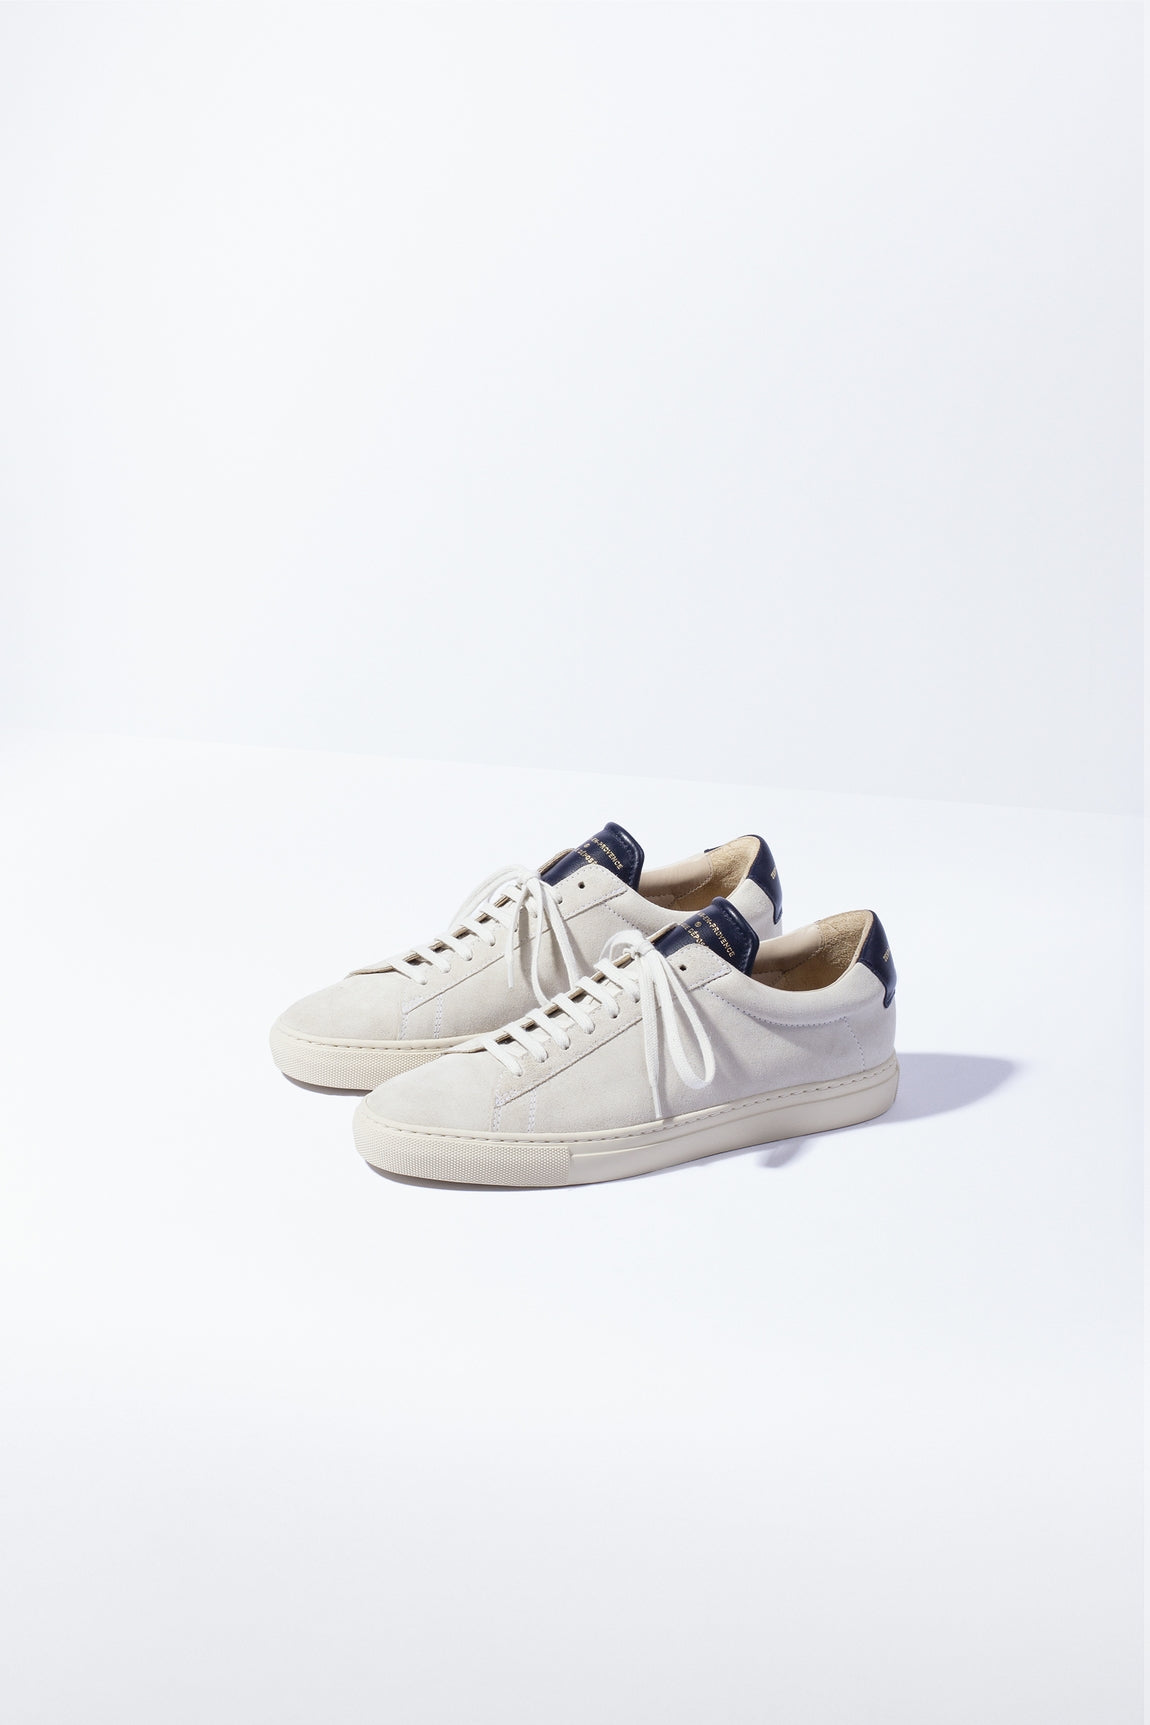 ZESPA - ZSP4. HGH APLA SUEDE  OFF WHITE / NAVY